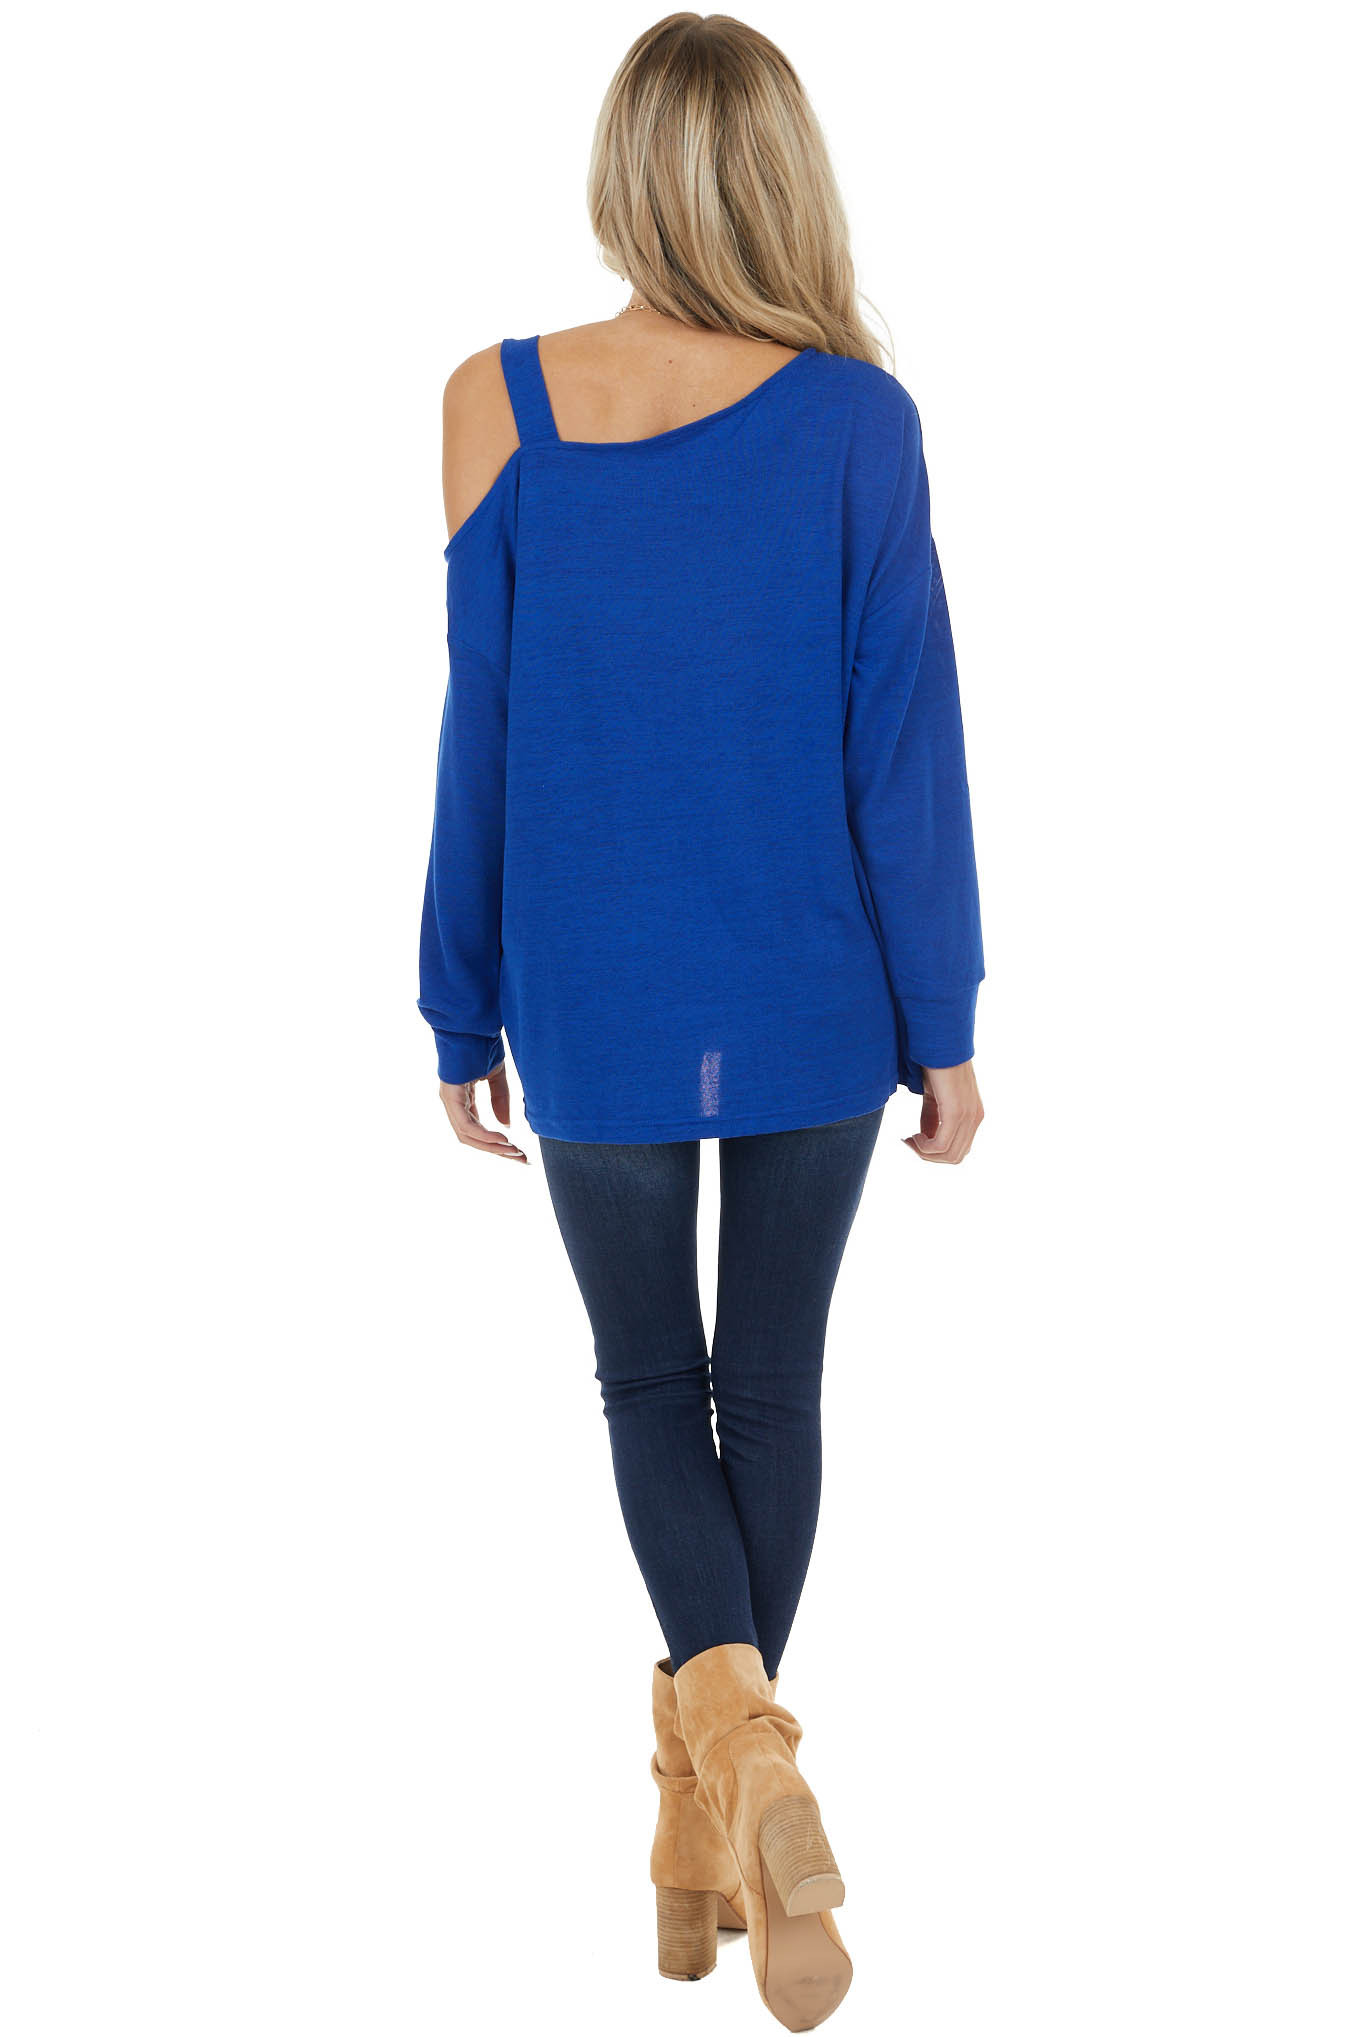 Royal Blue Long Sleeve Knit Top with Cold Shoulder Detail